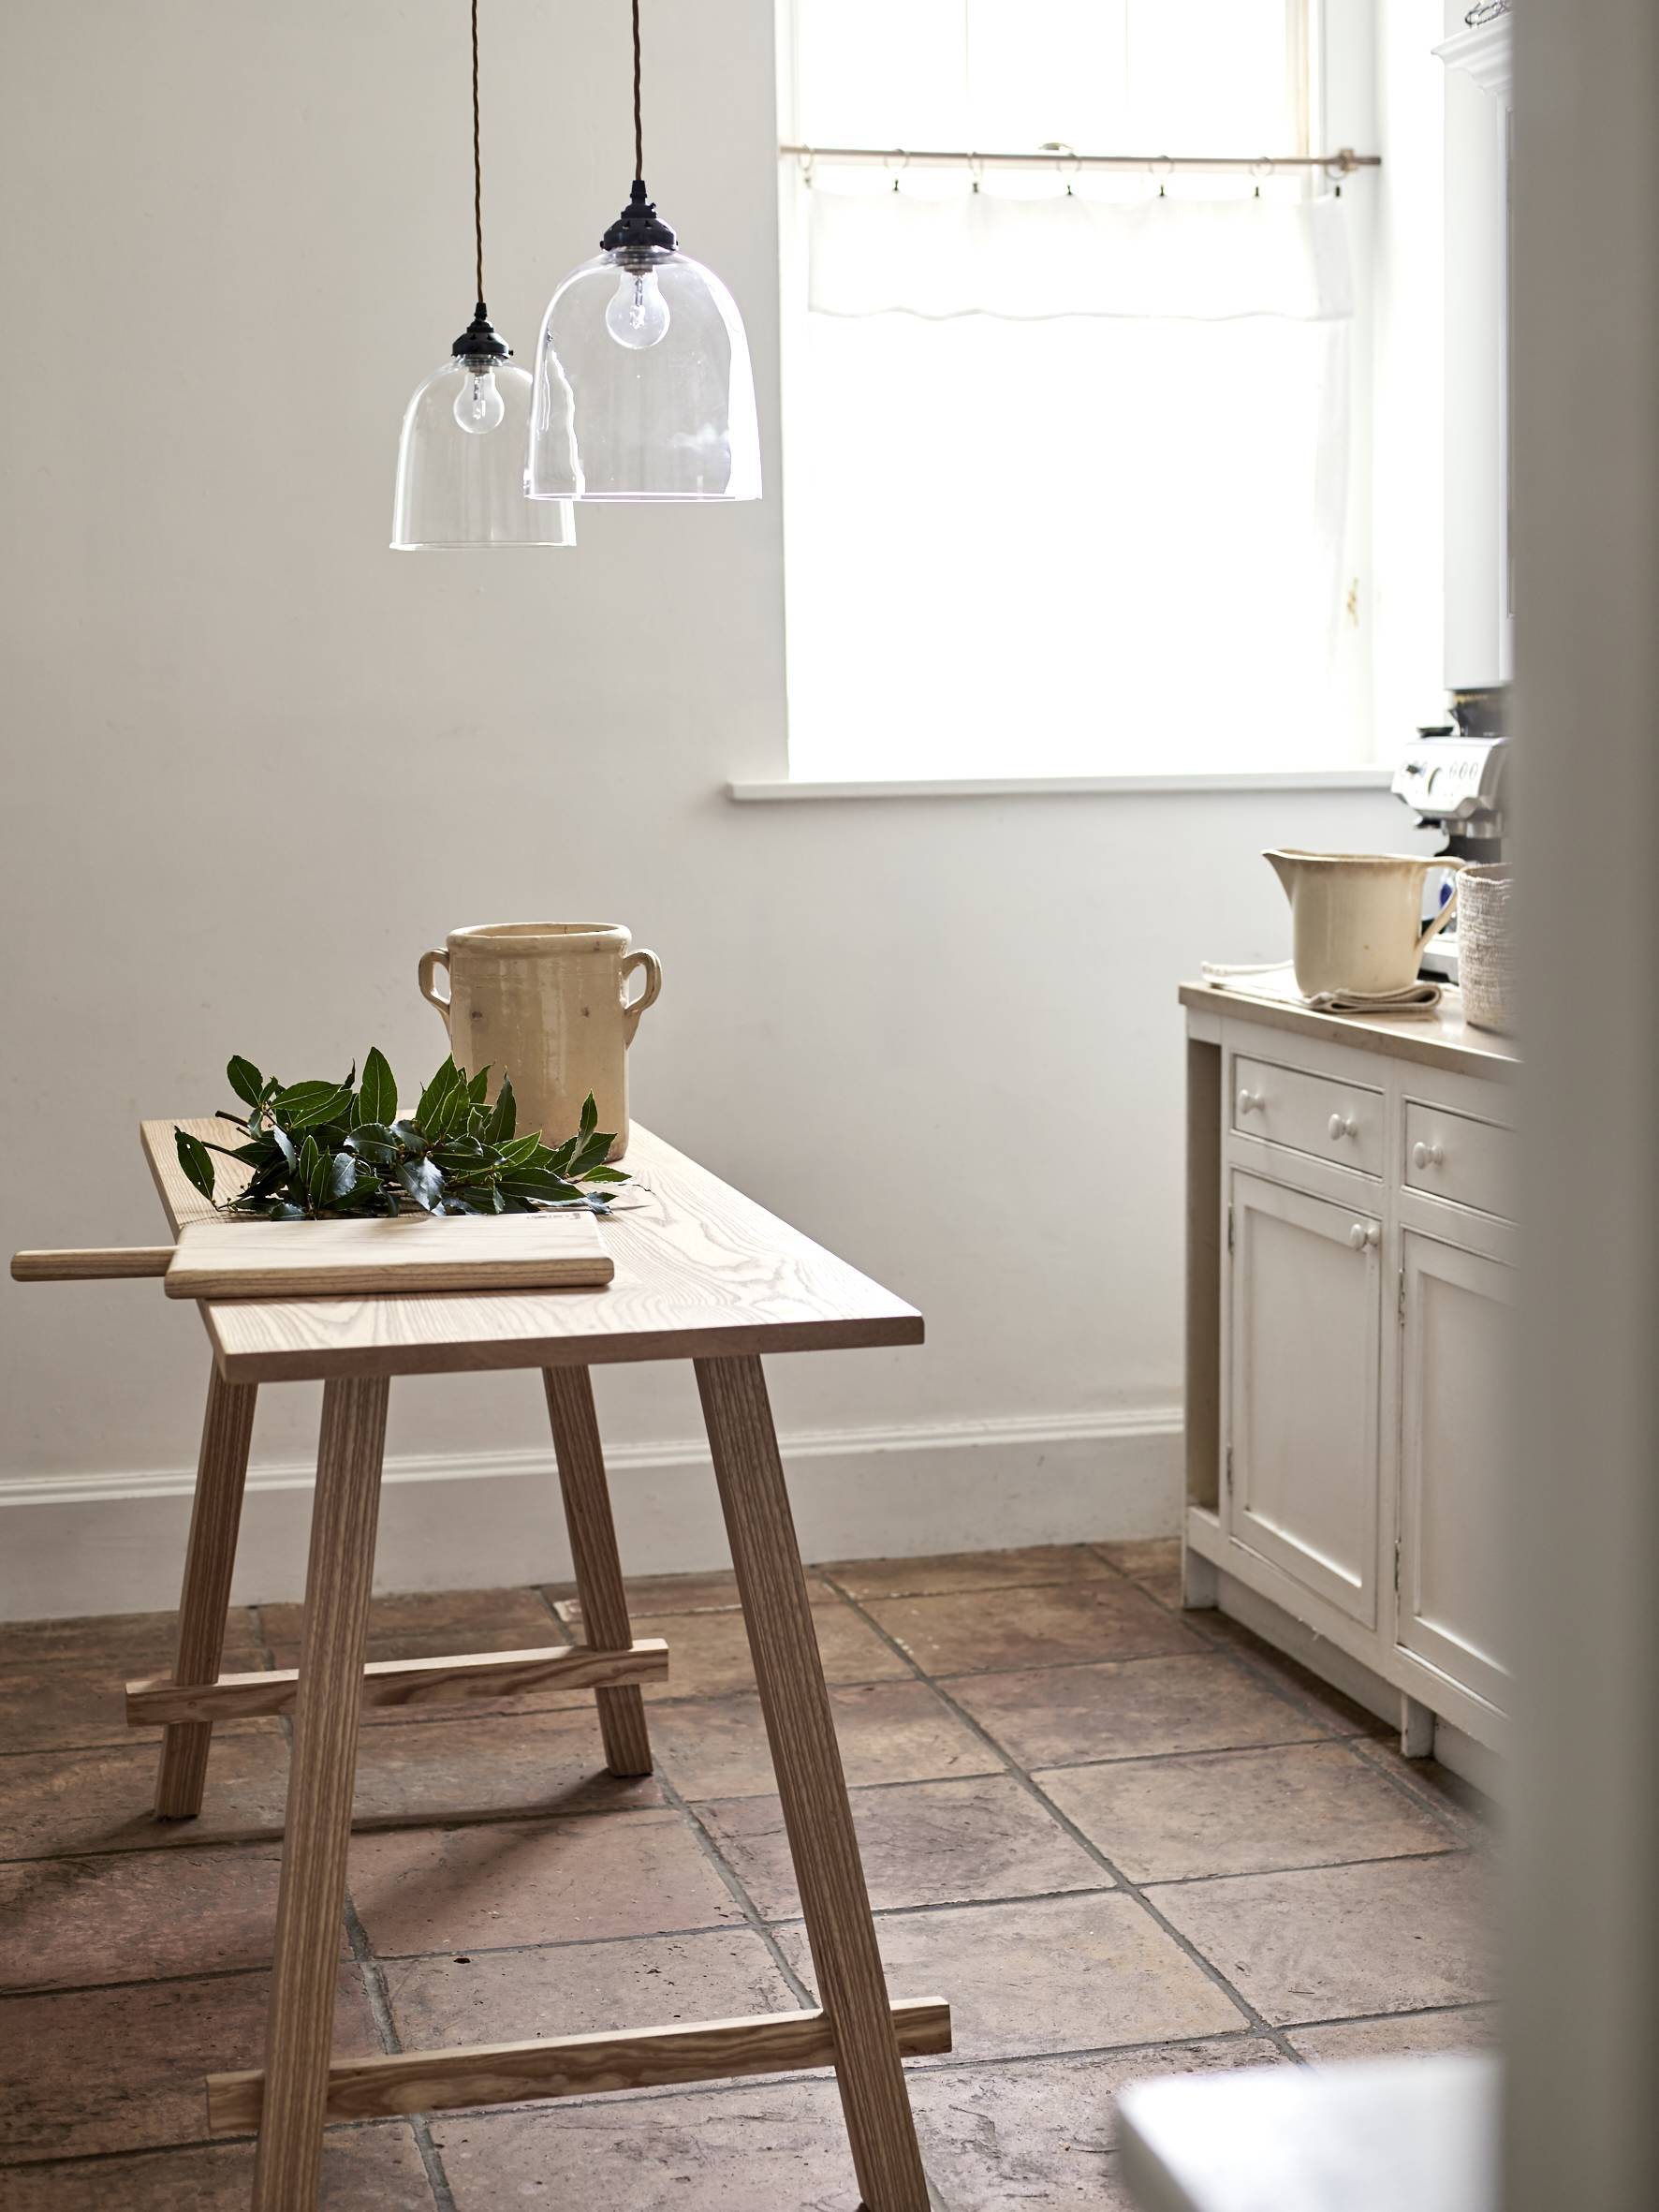 the clean, simple form of woodedit&#8\2\17;s kitchen island (seen here in a 14